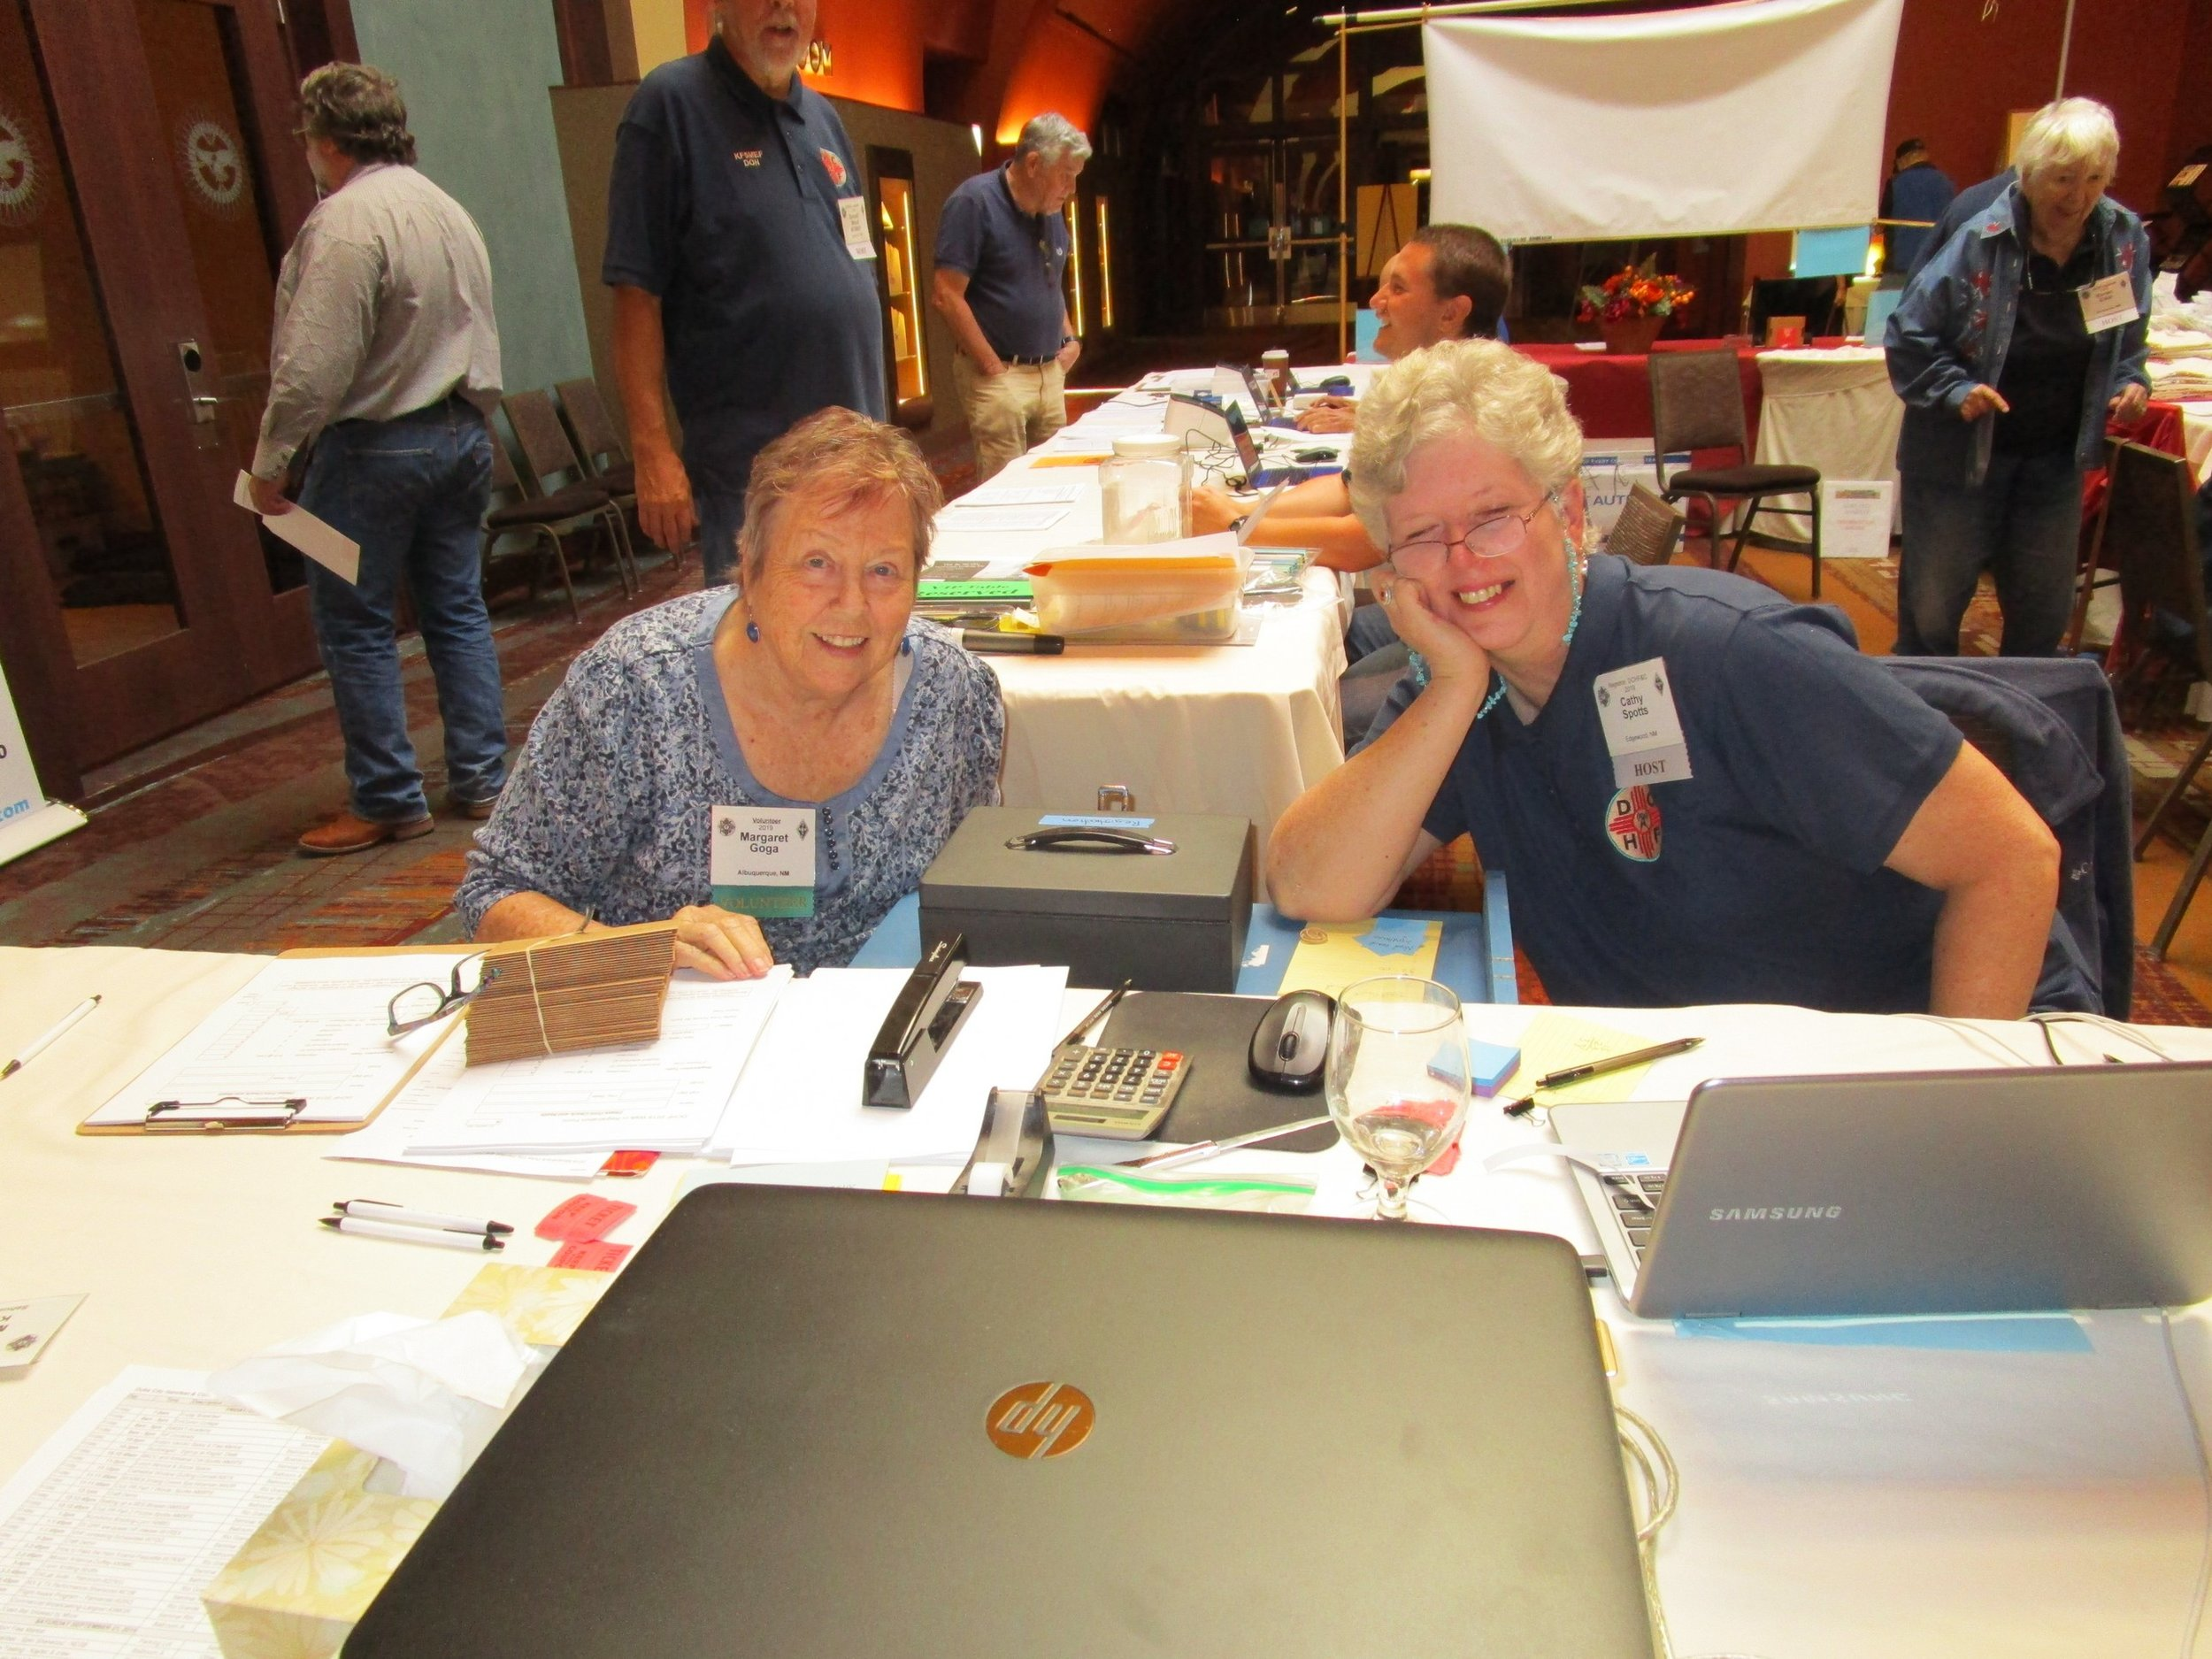 Margaret Goga & Cathy Spotts heading up the registration booth.